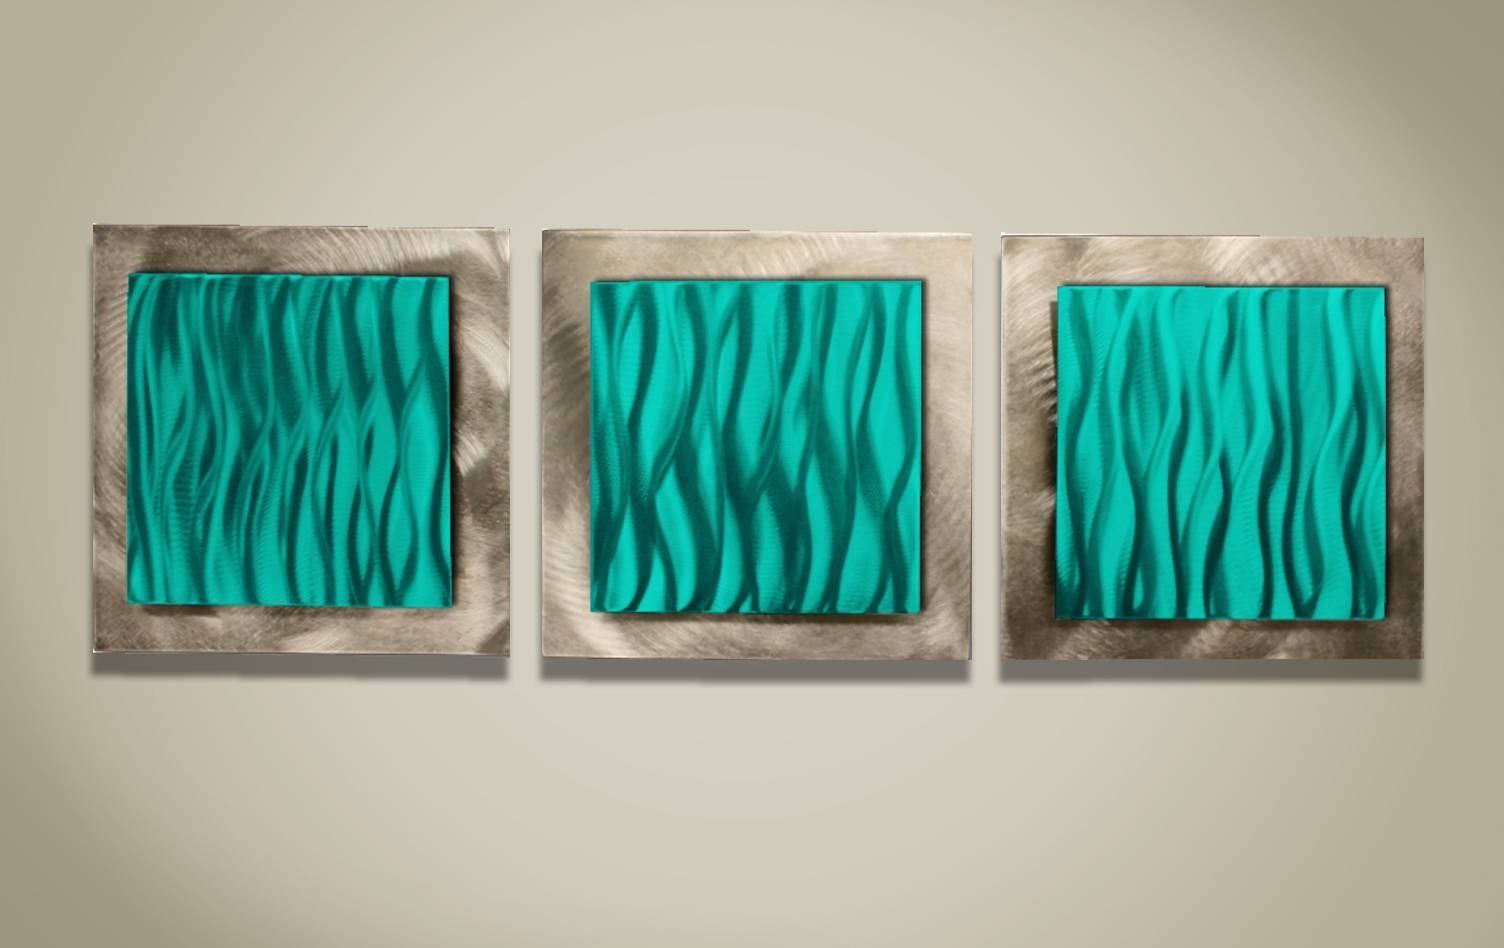 Teal Kitchen, Turquoise Metal Wall Art Decorative Metal Wall Art With Regard To Most Up To Date Teal Metal Wall Art (View 17 of 20)